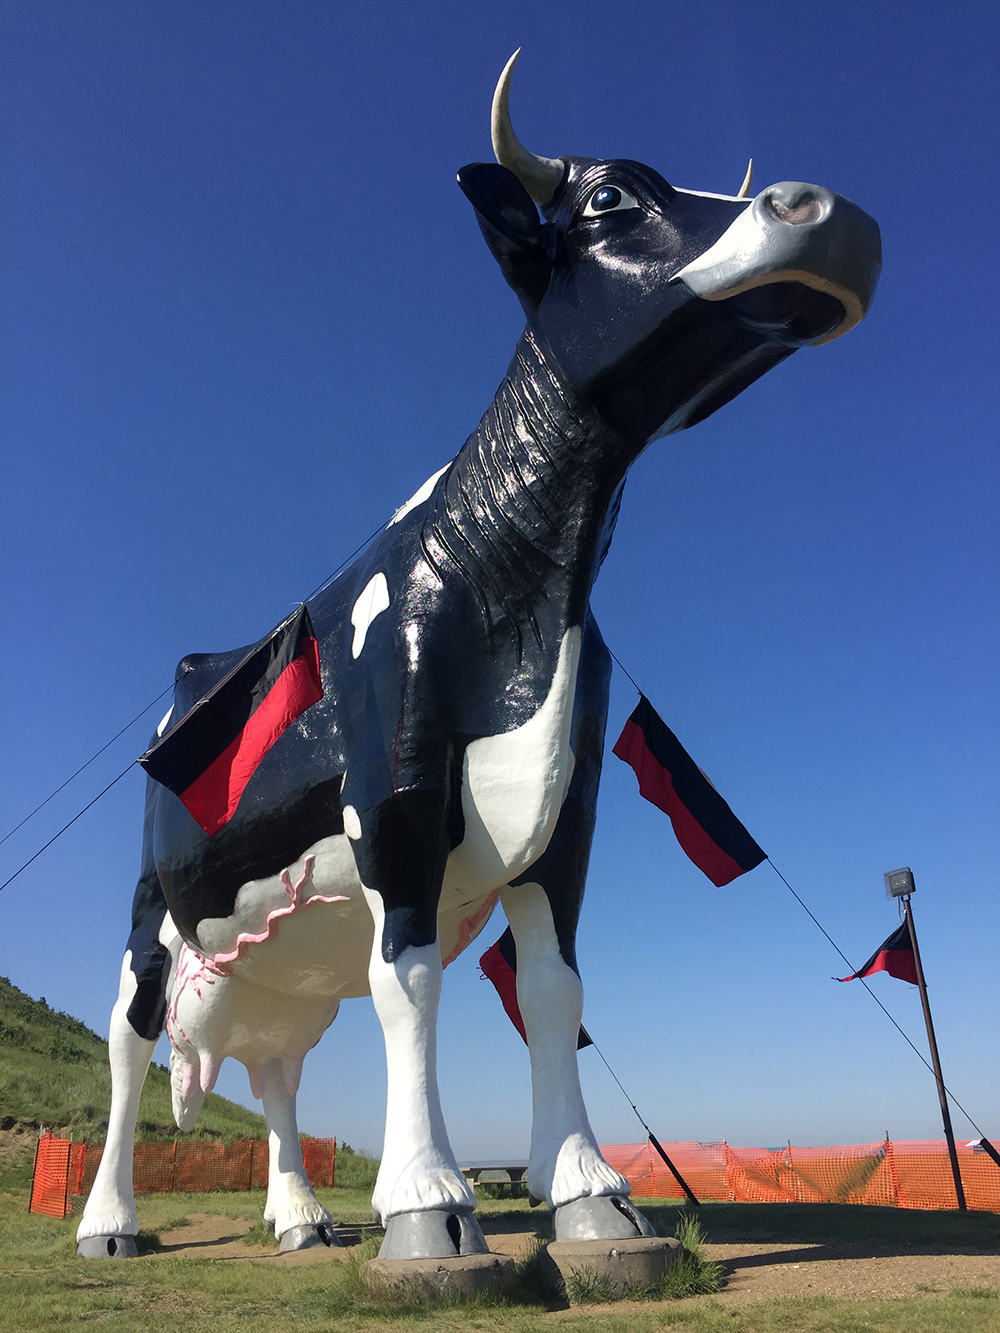 Giant black and white cow statue named Salem Sue, the world's largest Holstein cow, in New Salem, North Dakota